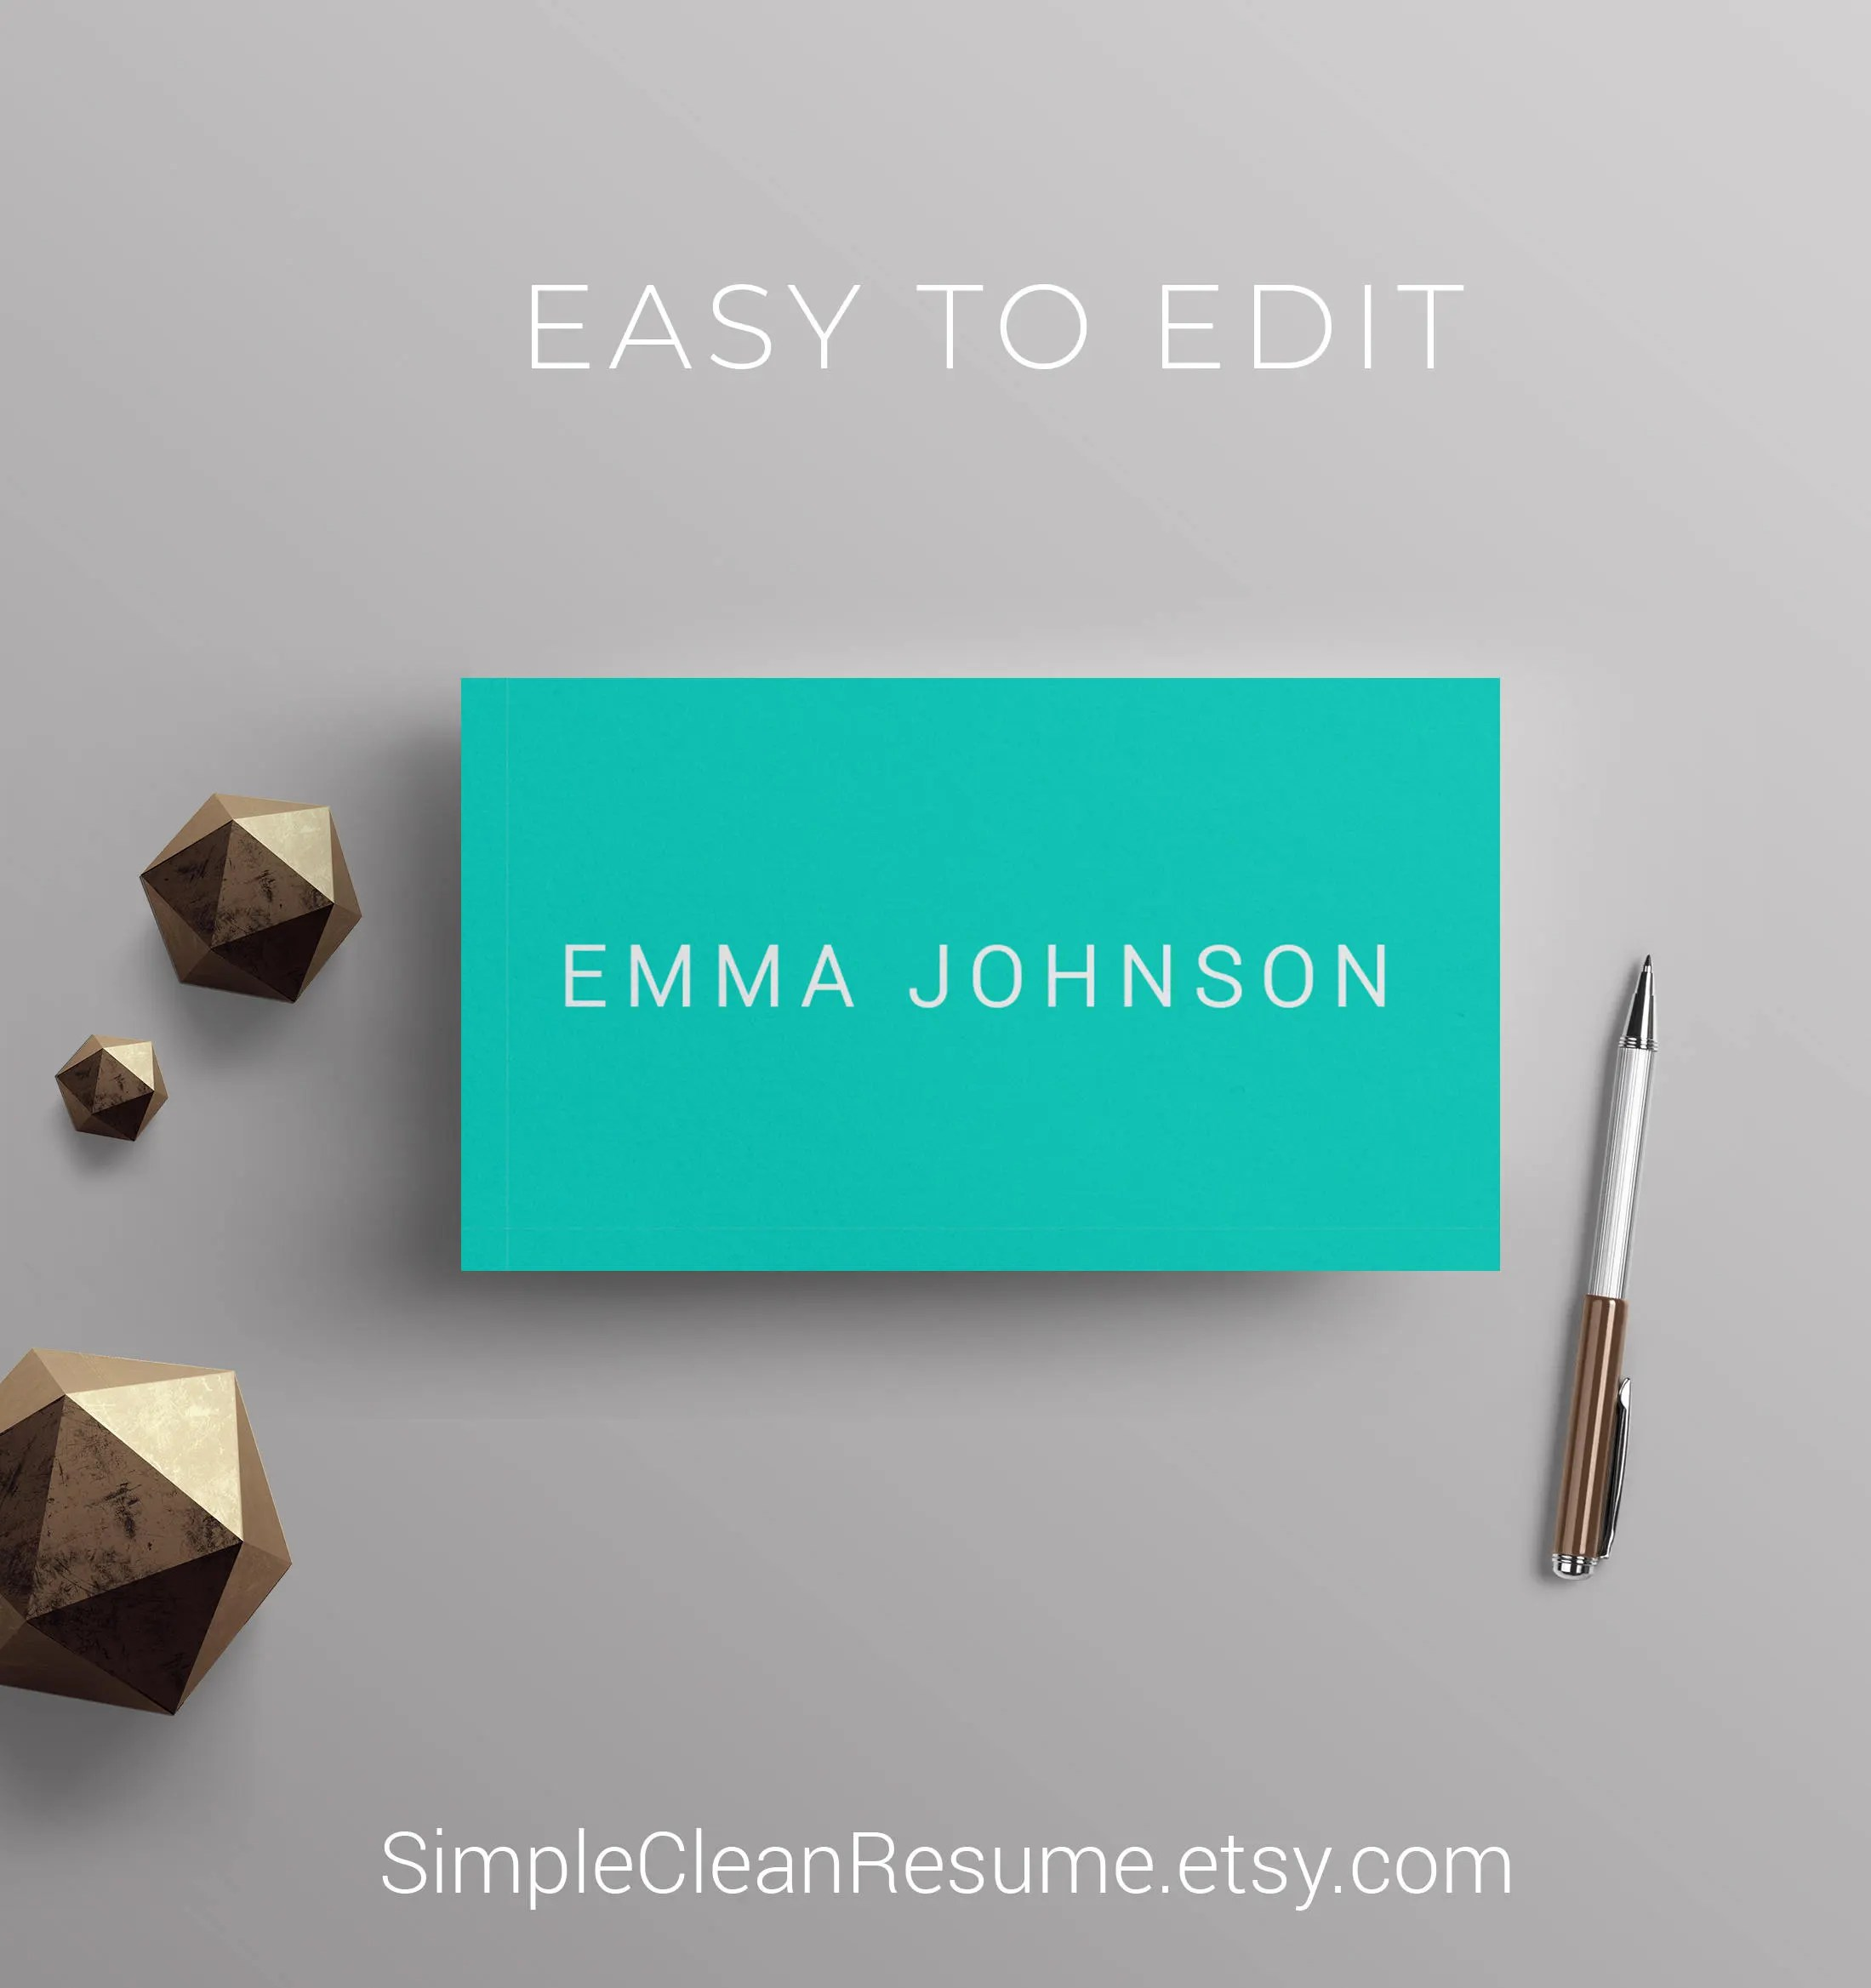 Minimalist Business Cards Template DIY Teal and White Etsy